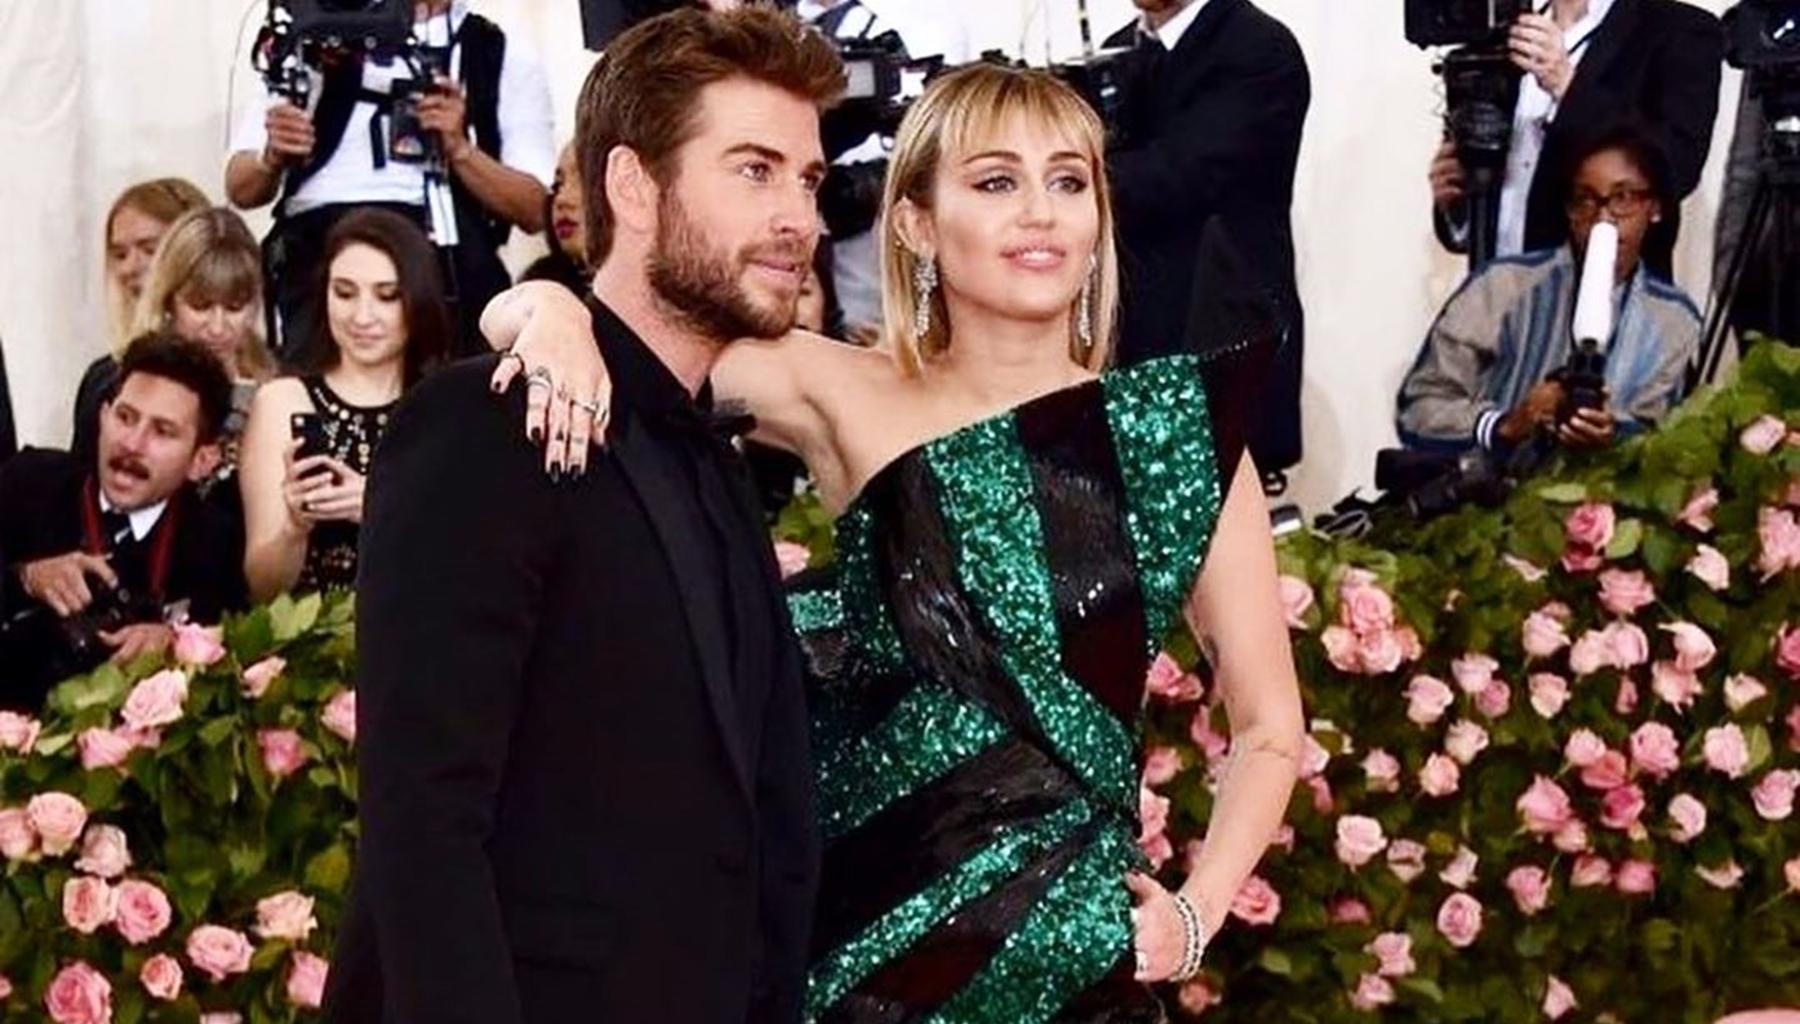 Miley Cyrus Is Divorcing Liam Hemsworth To Be Her Old Self Again -- Wild And Unpredictable